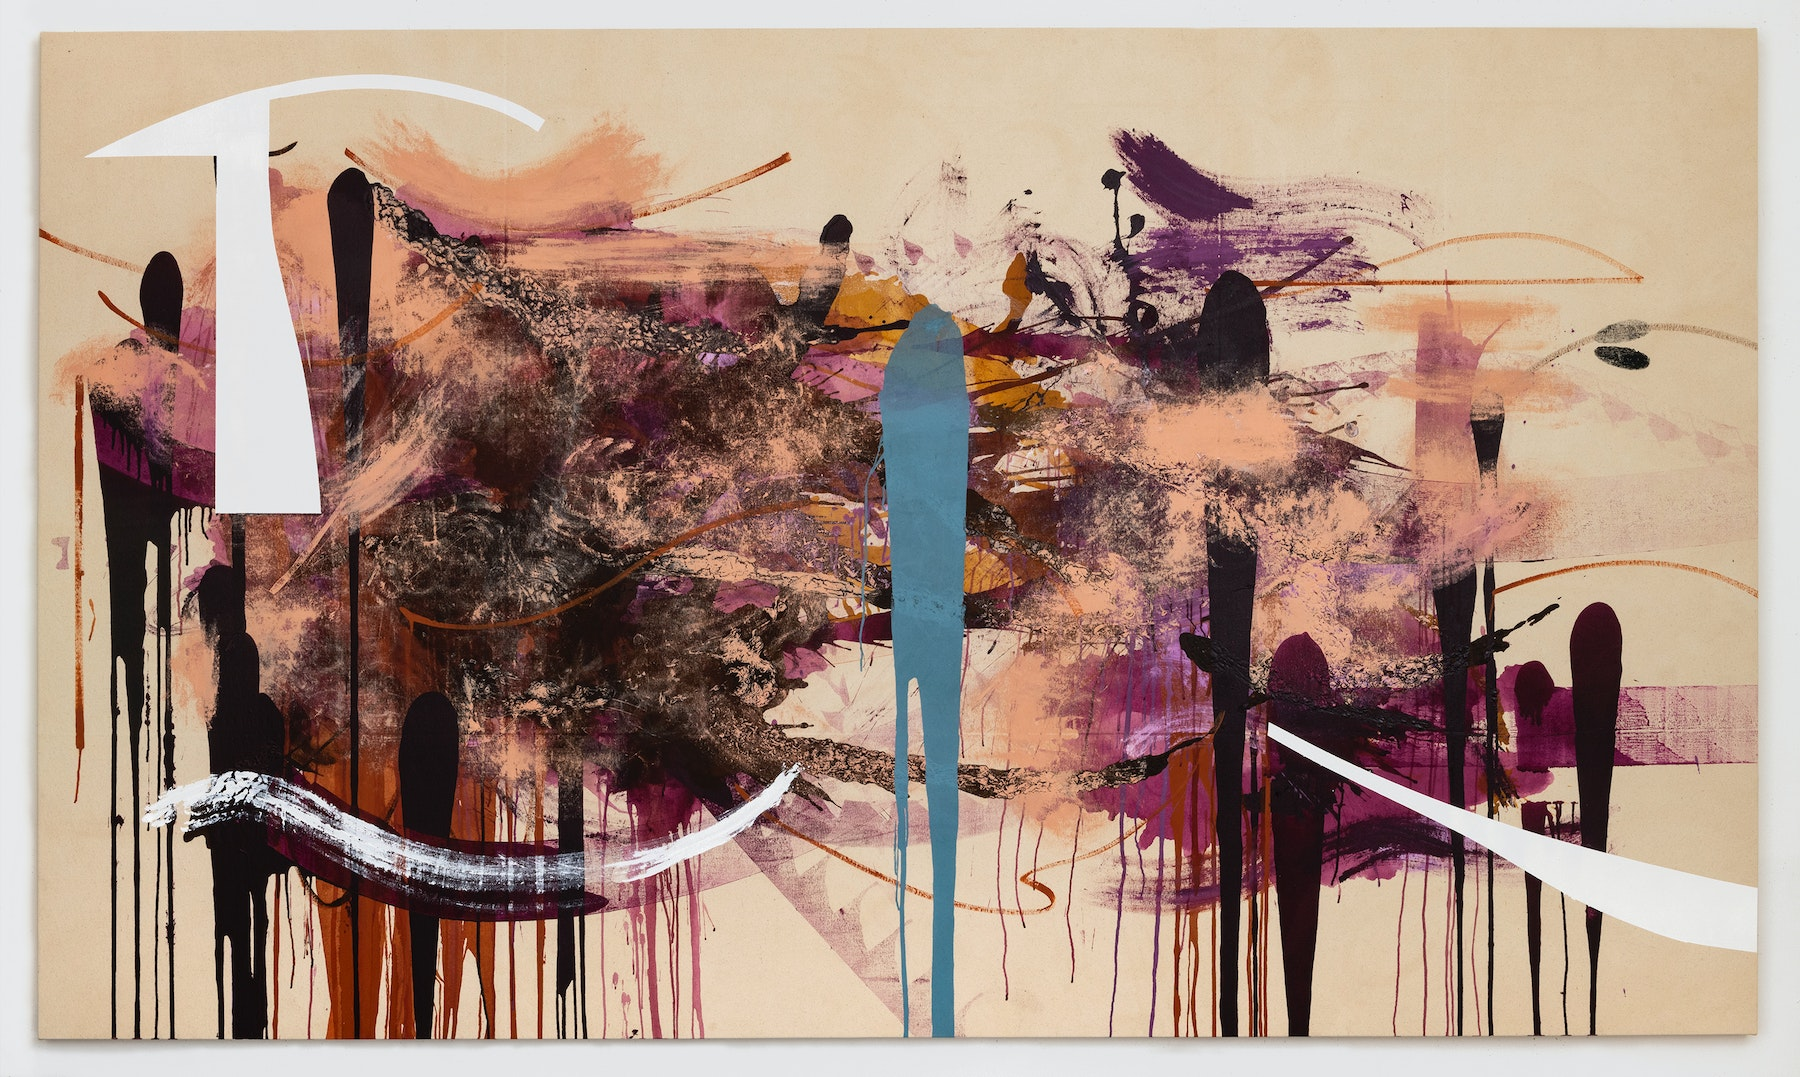 """Elizabeth Neel """"Afterlife,"""" 2019 Acrylic on canvas 76 x 130"""" [HxW] (193.04 x 330.2 cm) Inventory #NEE240 Courtesy of the artist and Vielmetter Los Angeles Photocredit Adam Reich, NY"""